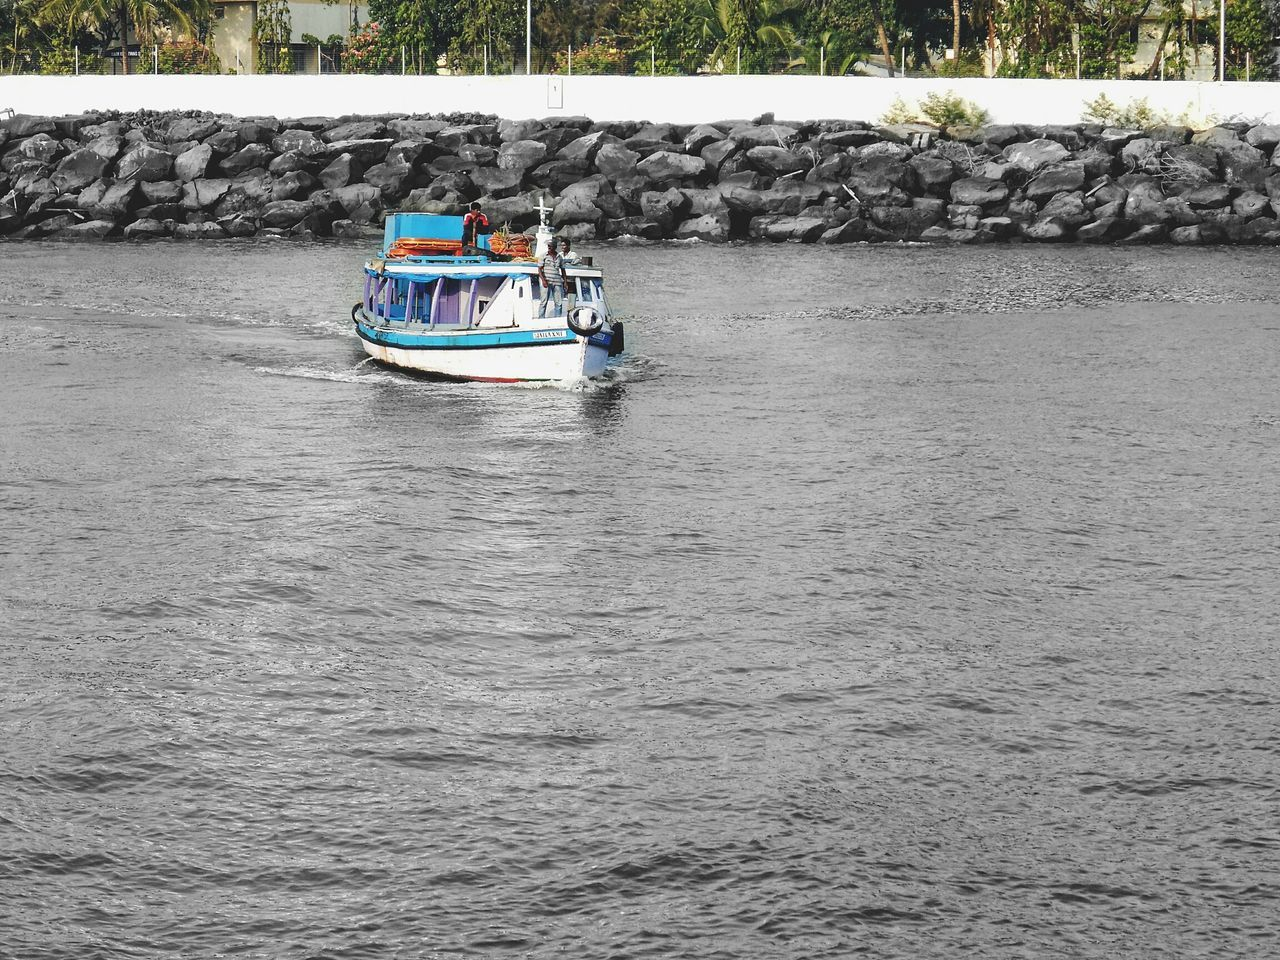 Nautical Vessel Transportation Mode Of Transport Day Outdoors Water Nature No People AWESOME!!  People Beach Sea Awesome Day Awesome_shots Scenics City Motion Personal Perspective Transportation Men GIMP Photo Editor Edited My Way AWESOME!!